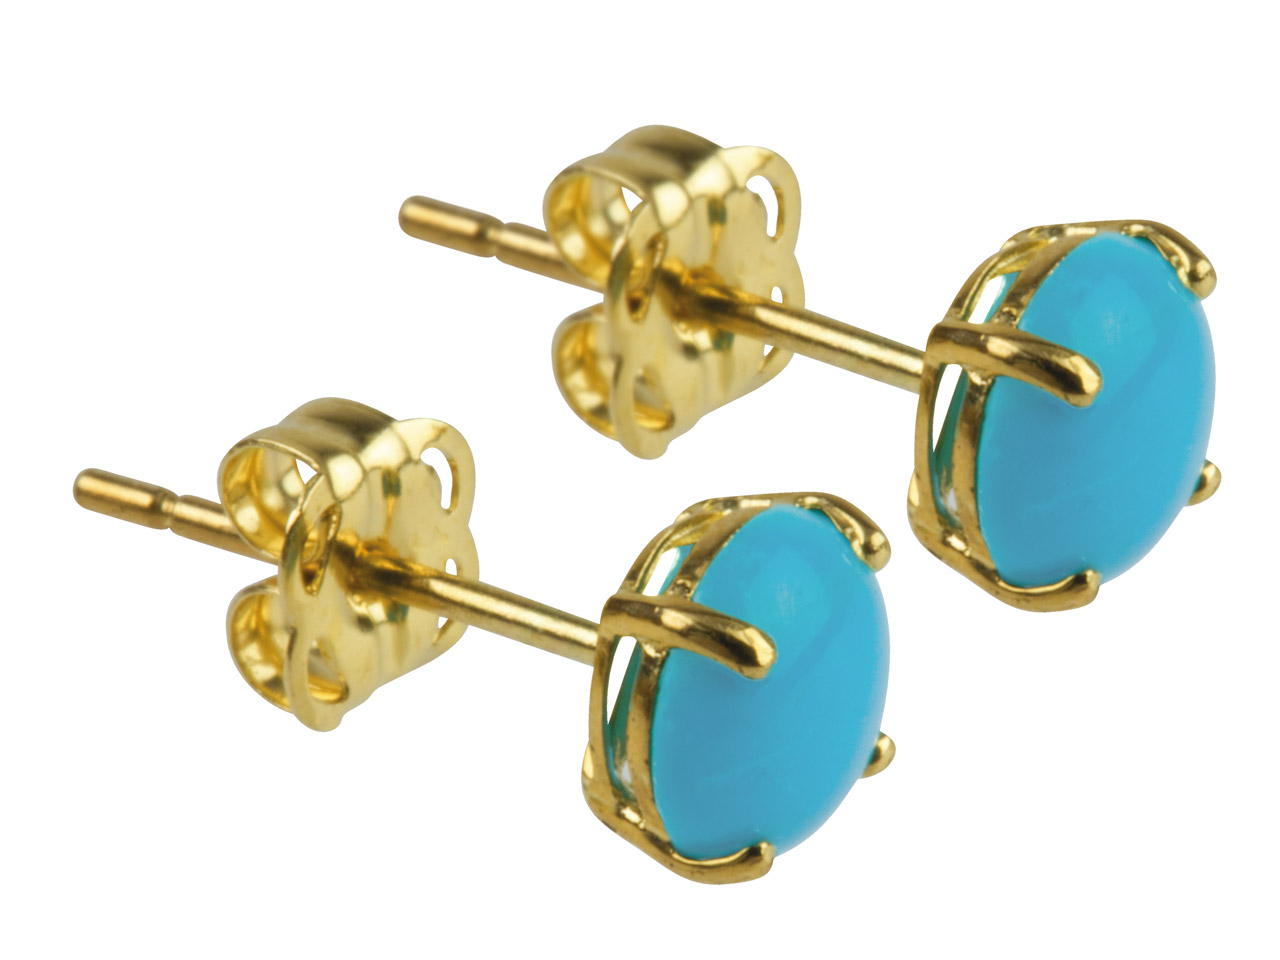 9ct Yellow Birthstone Earrings 5mm  Round Stabilised Turquoise Cabochon - December